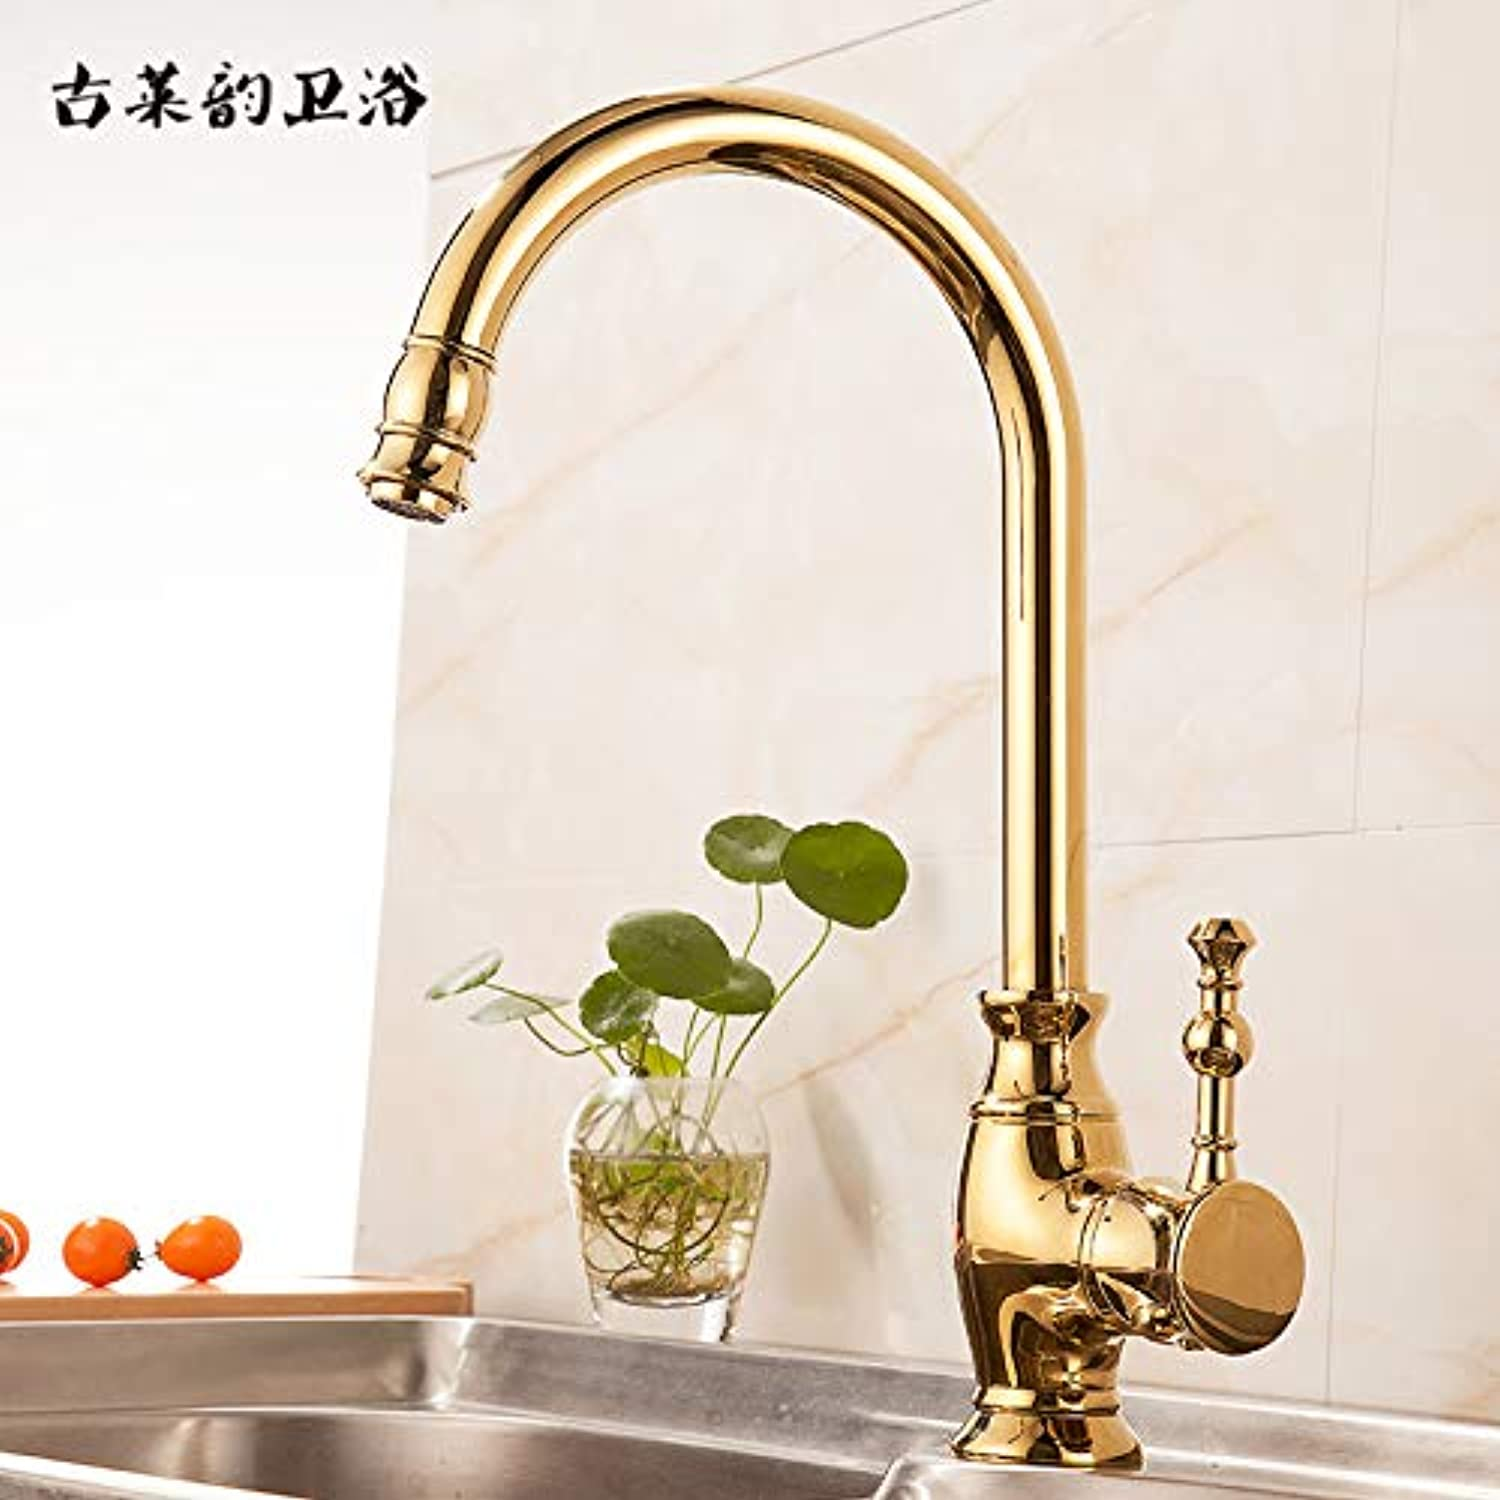 redOOY Faucet Taps Faucet gold Antique Kitchen Sink Faucet Hot And Cold Copper Sink Kitchen Faucet, A